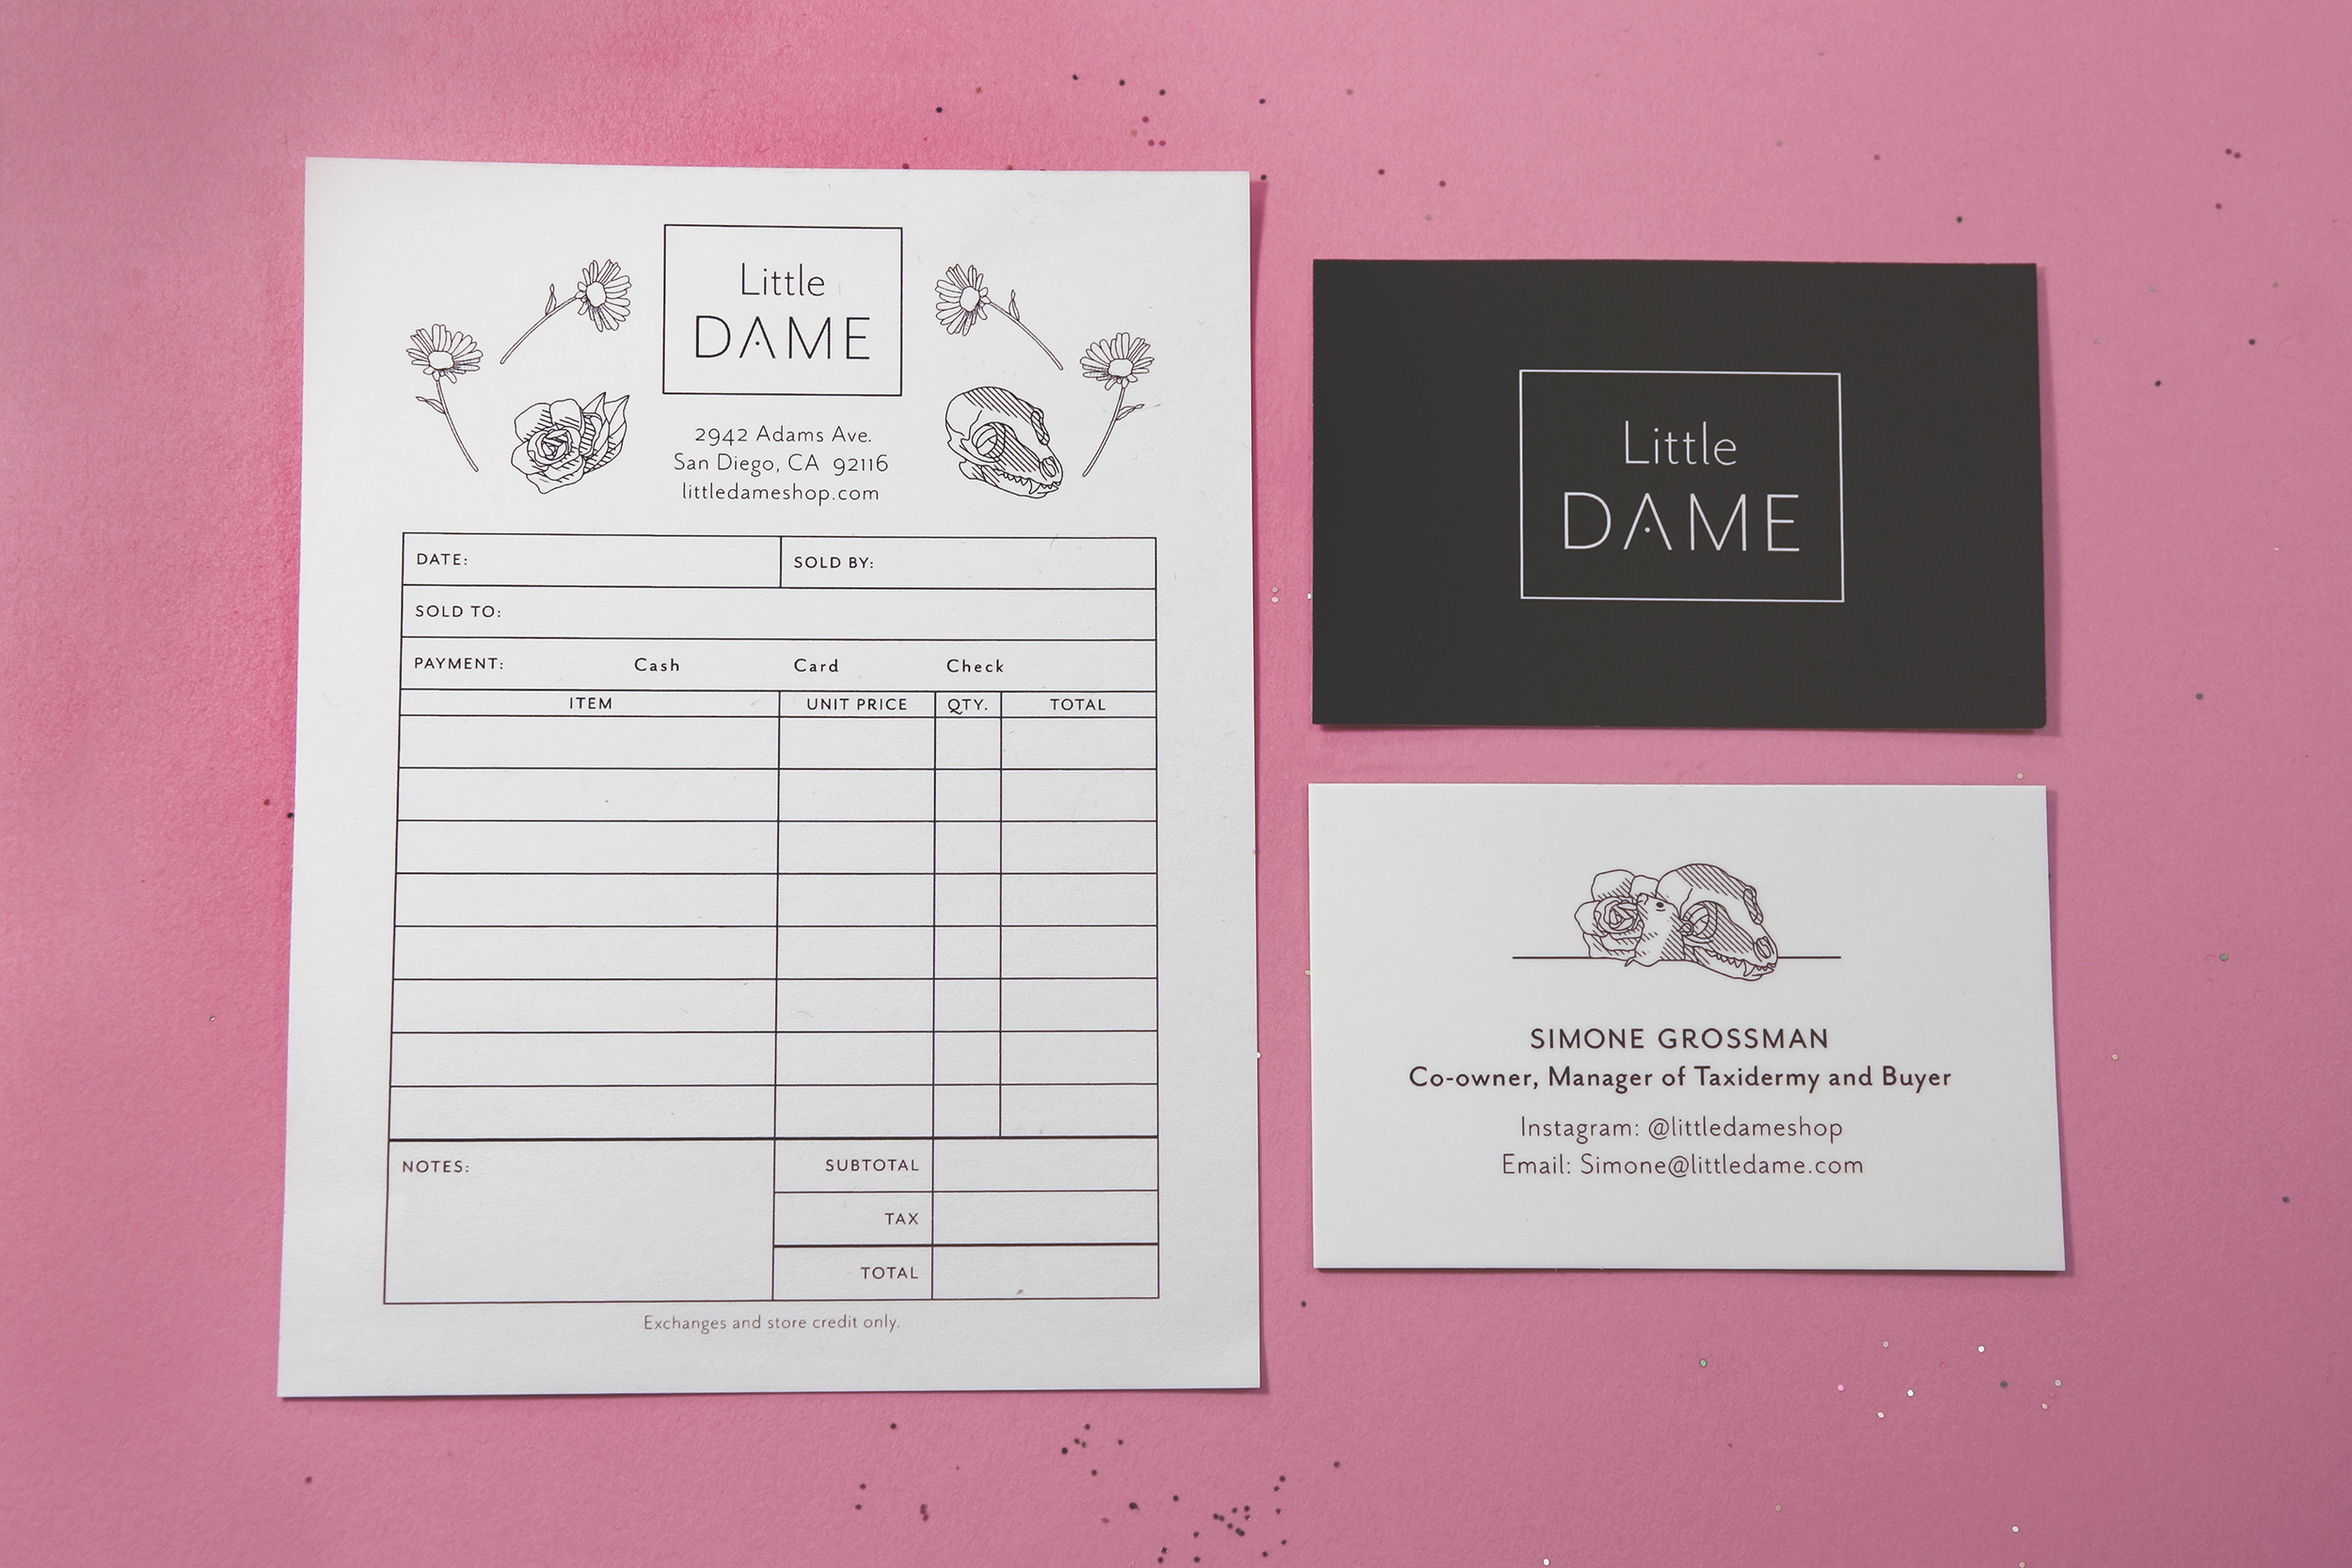 Little Dame Shop: Receipt and Business Card